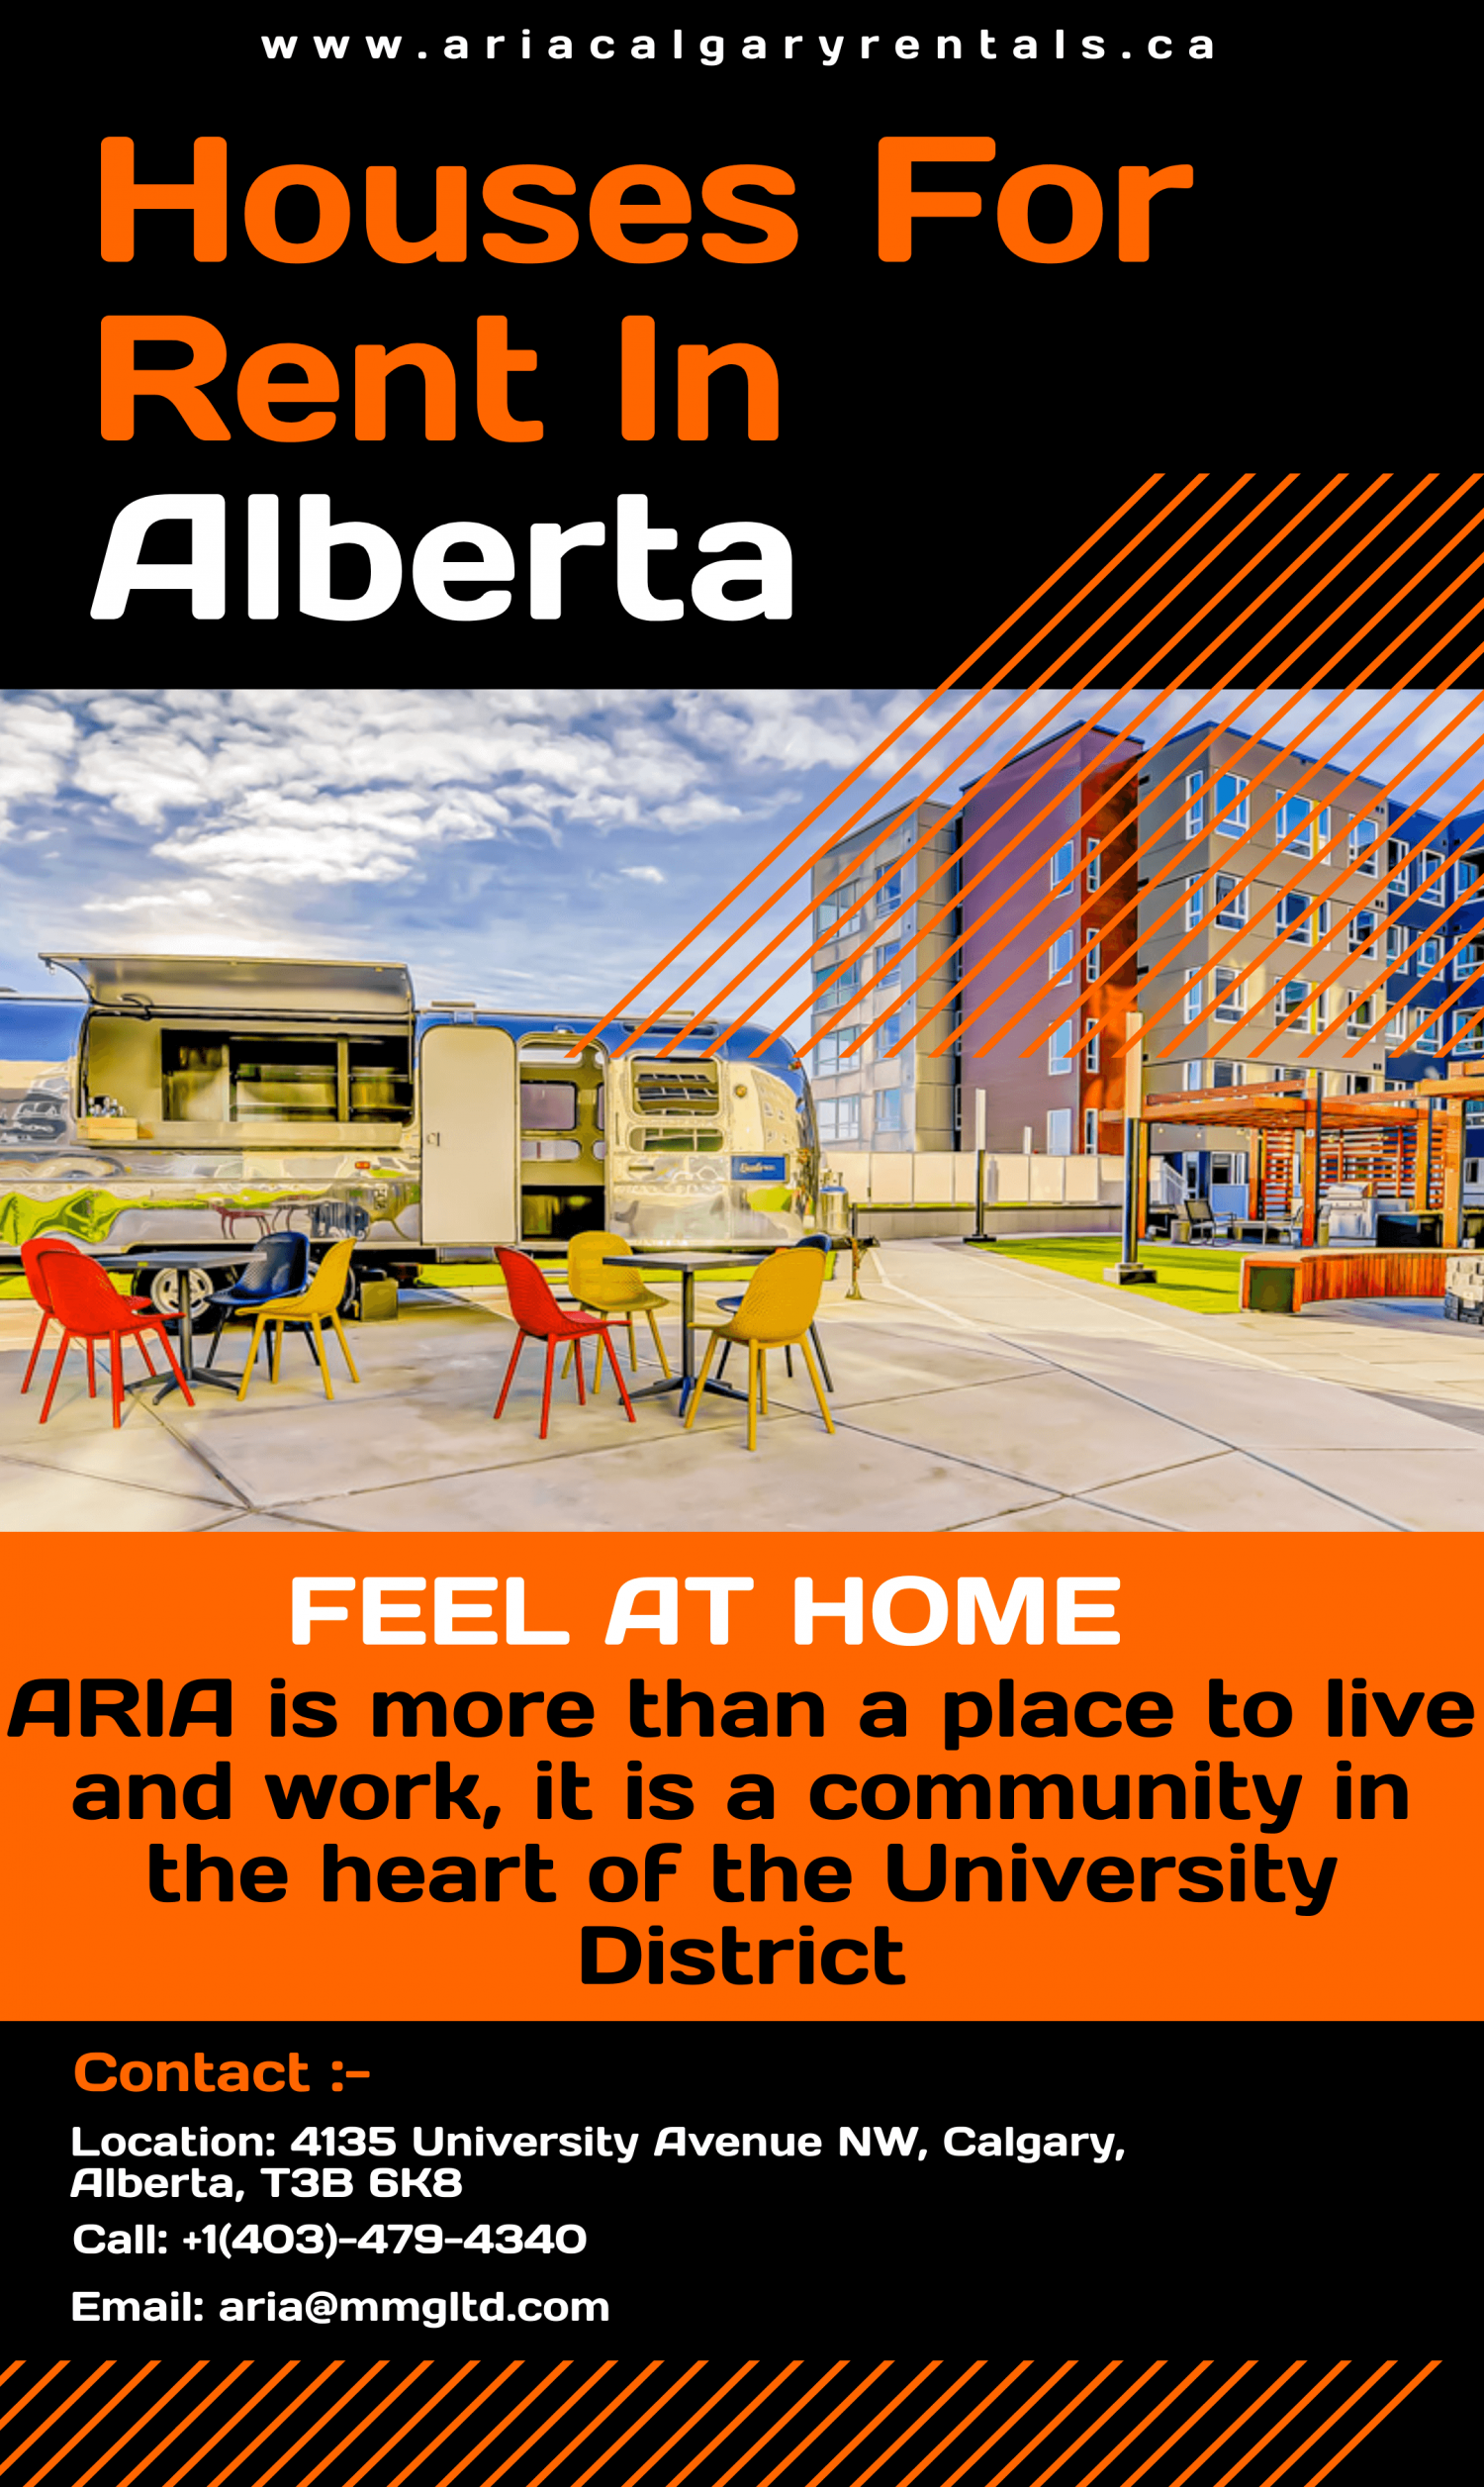 House For Rent In Alberta Infographic